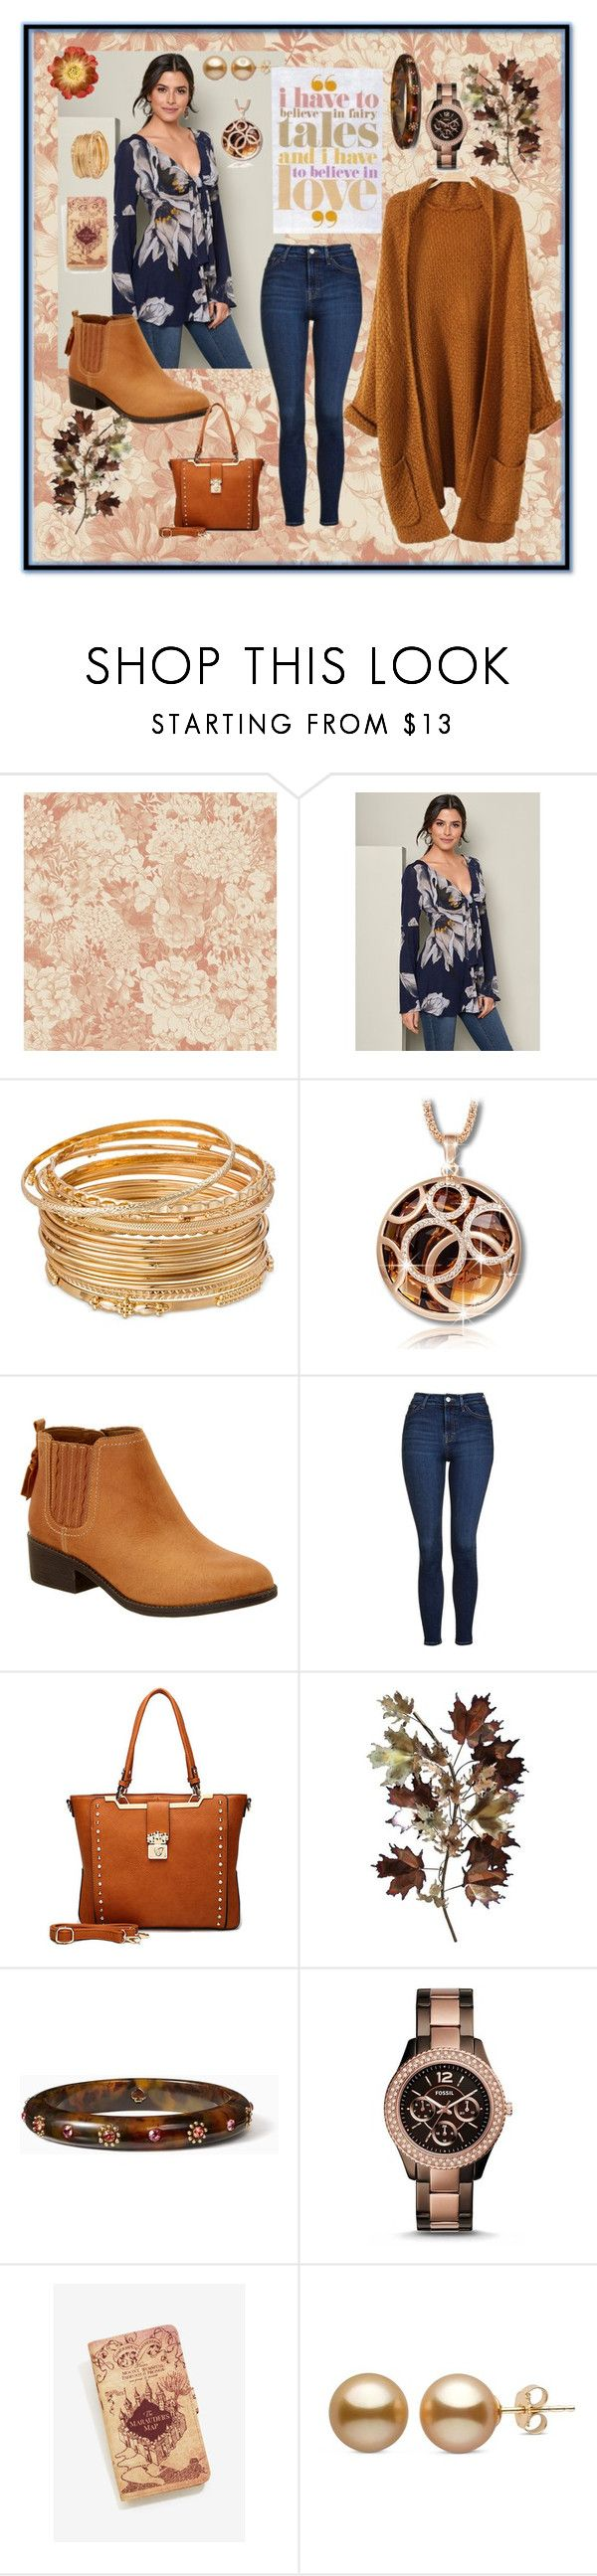 """Believe in Youself"" by aurorasblueheaven ❤ liked on Polyvore featuring Venus, Sperry, Topshop, C. Jeré, Kate Spade, FOSSIL and Warner Bros."